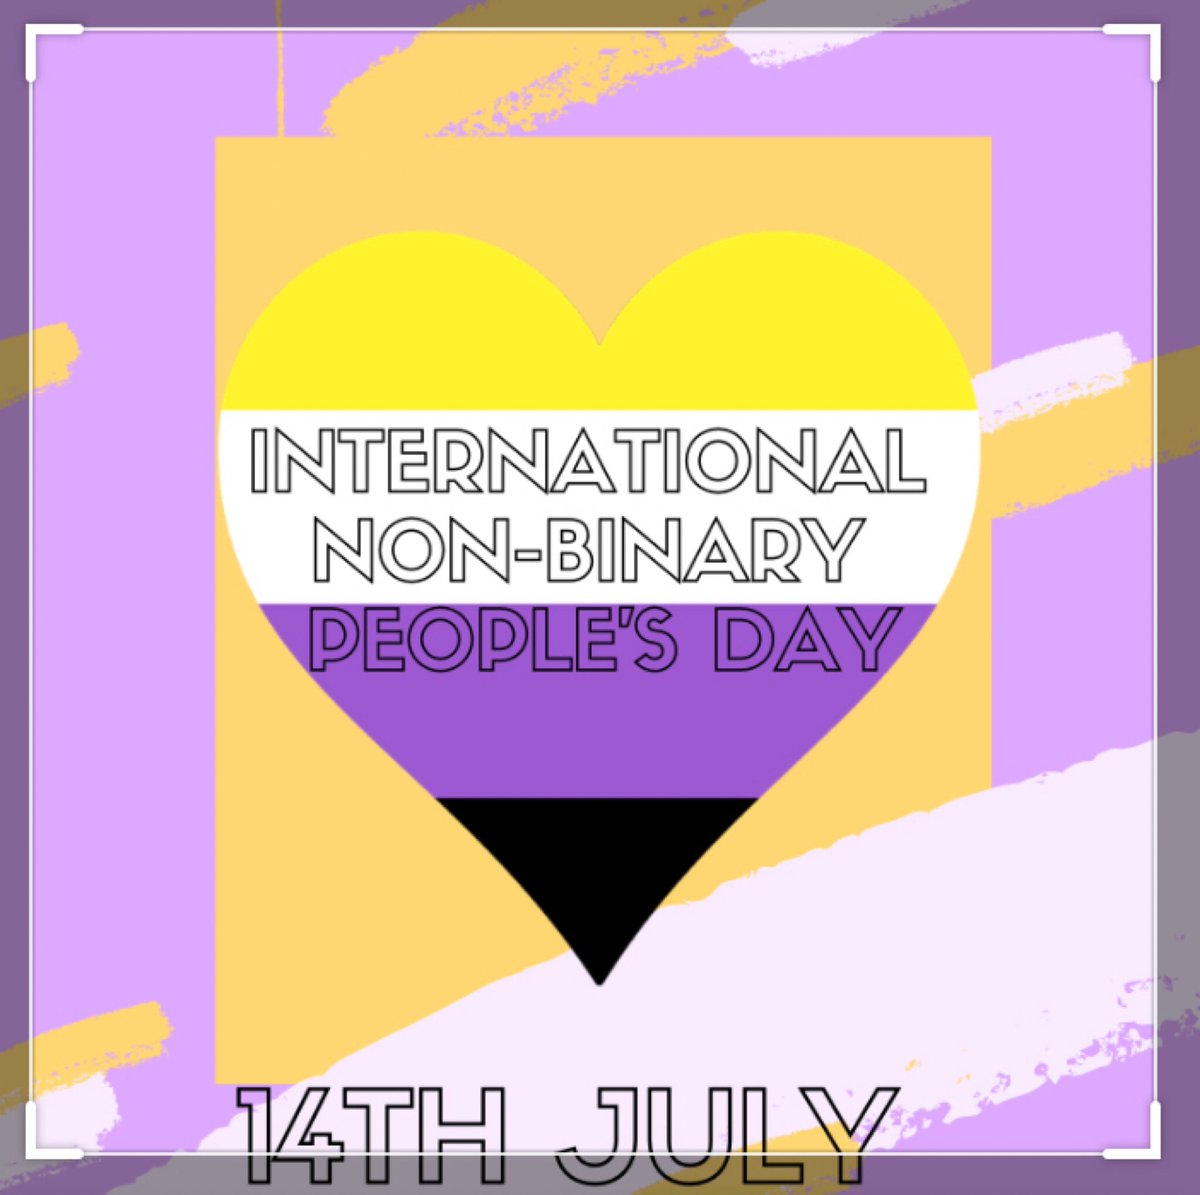 Happy International Non-binary People's Day! Here at GlosFire we're keen to show our support #Ally @GCC_LGBT @GlosCC